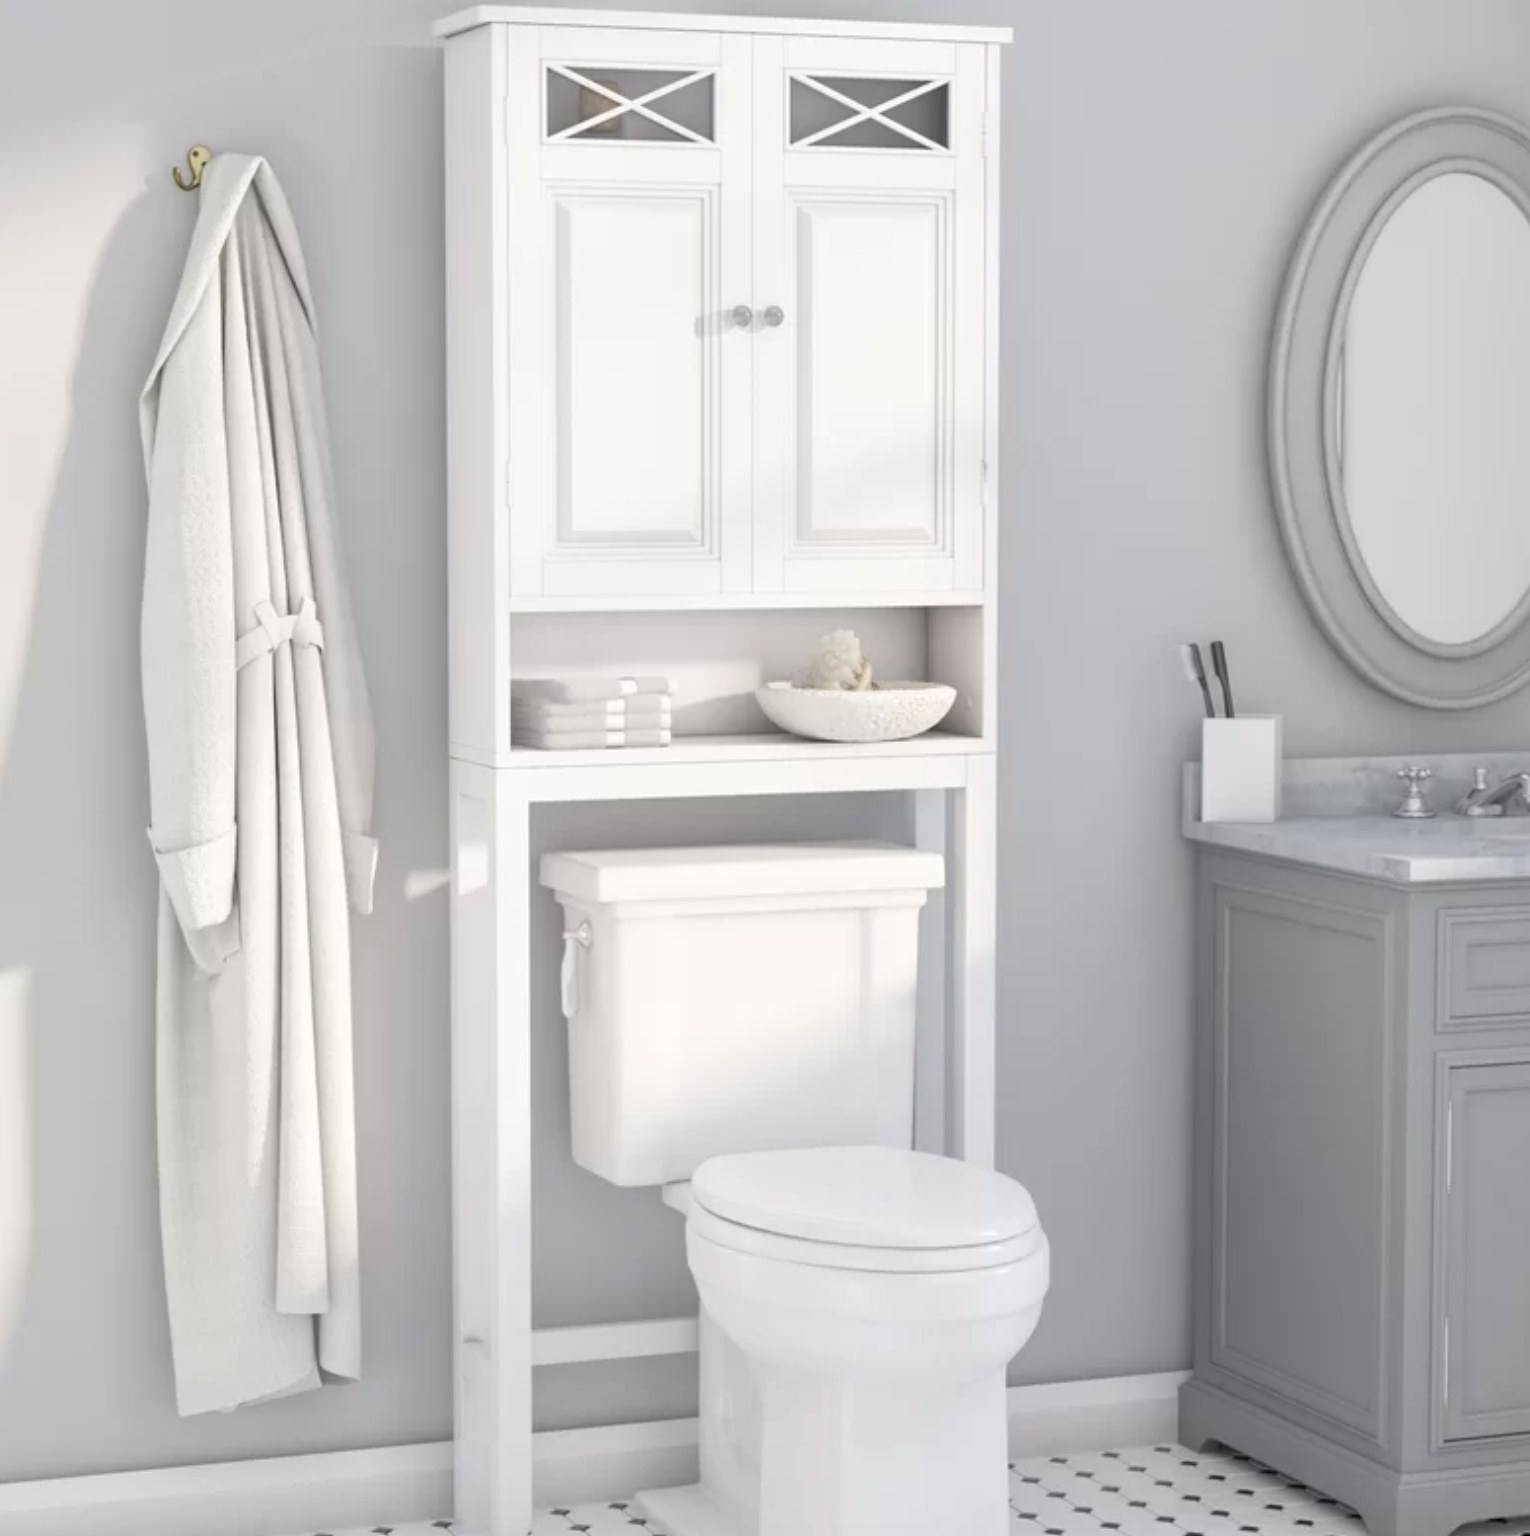 The white storage cabinet above a toilet in a bathroom